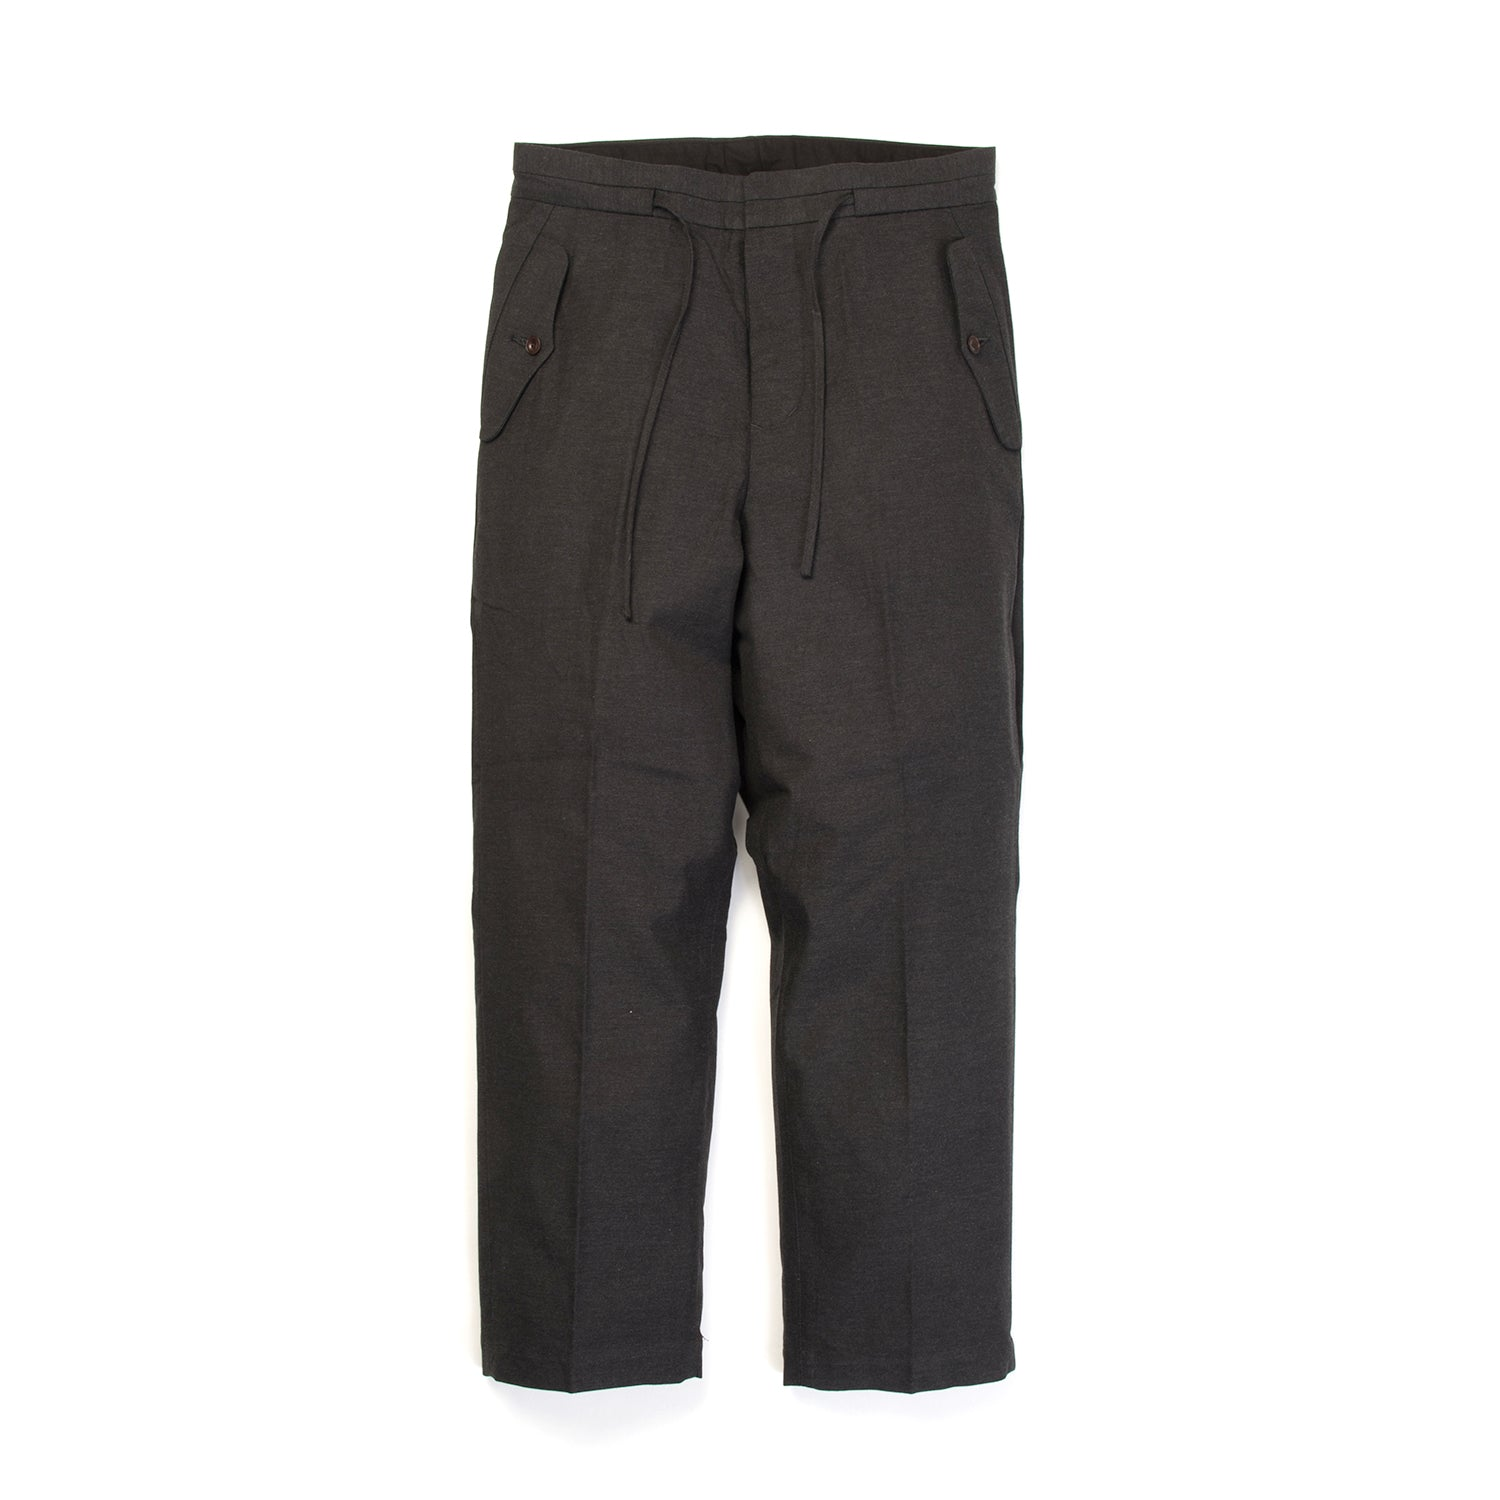 Haversack Trousers 461721-04